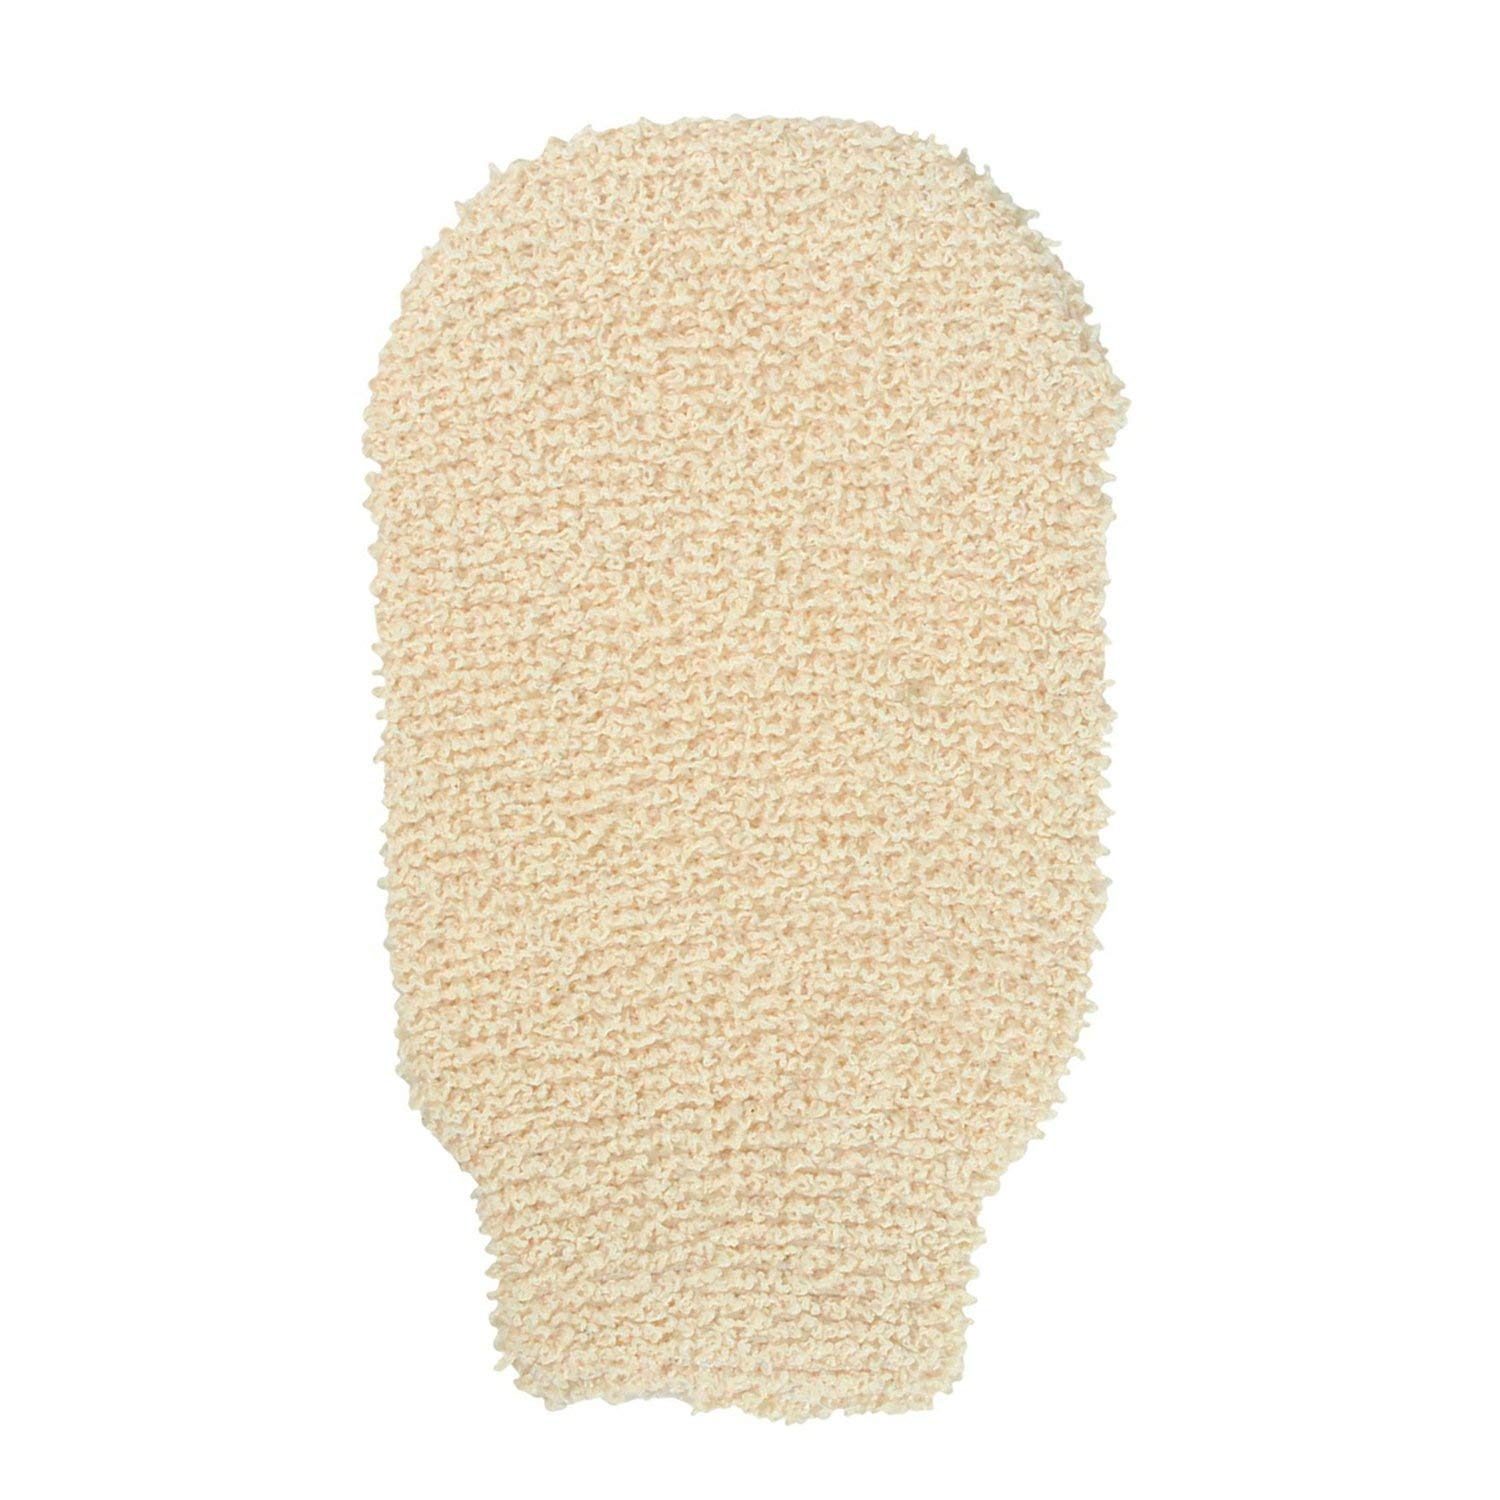 exfoliating gloves best scrubbing mitts smooth skin mylifeunit natural vegetable fiber